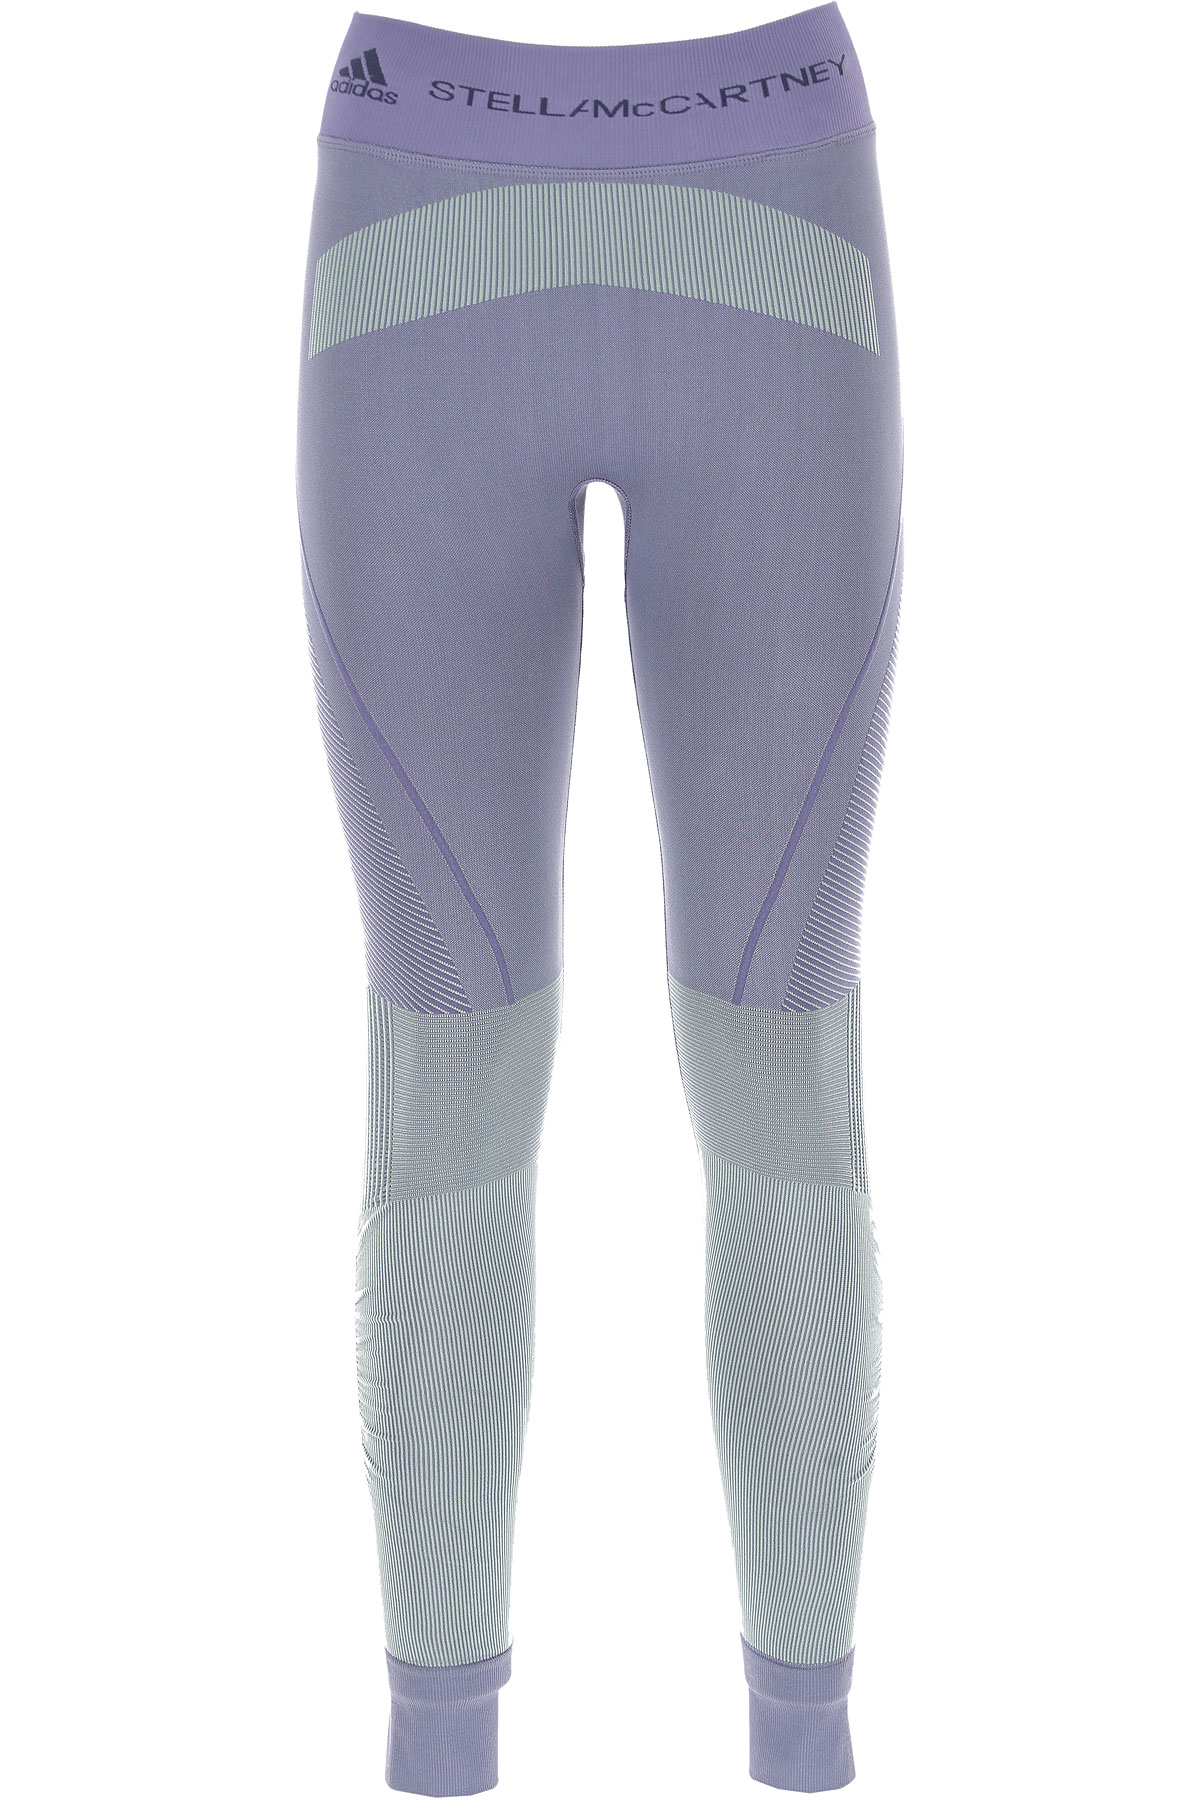 Image of Adidas Women\'s Sportswear for Gym Workouts and Running On Sale in Outlet, Periwinkle, Nylon, 2017, 2 4 6